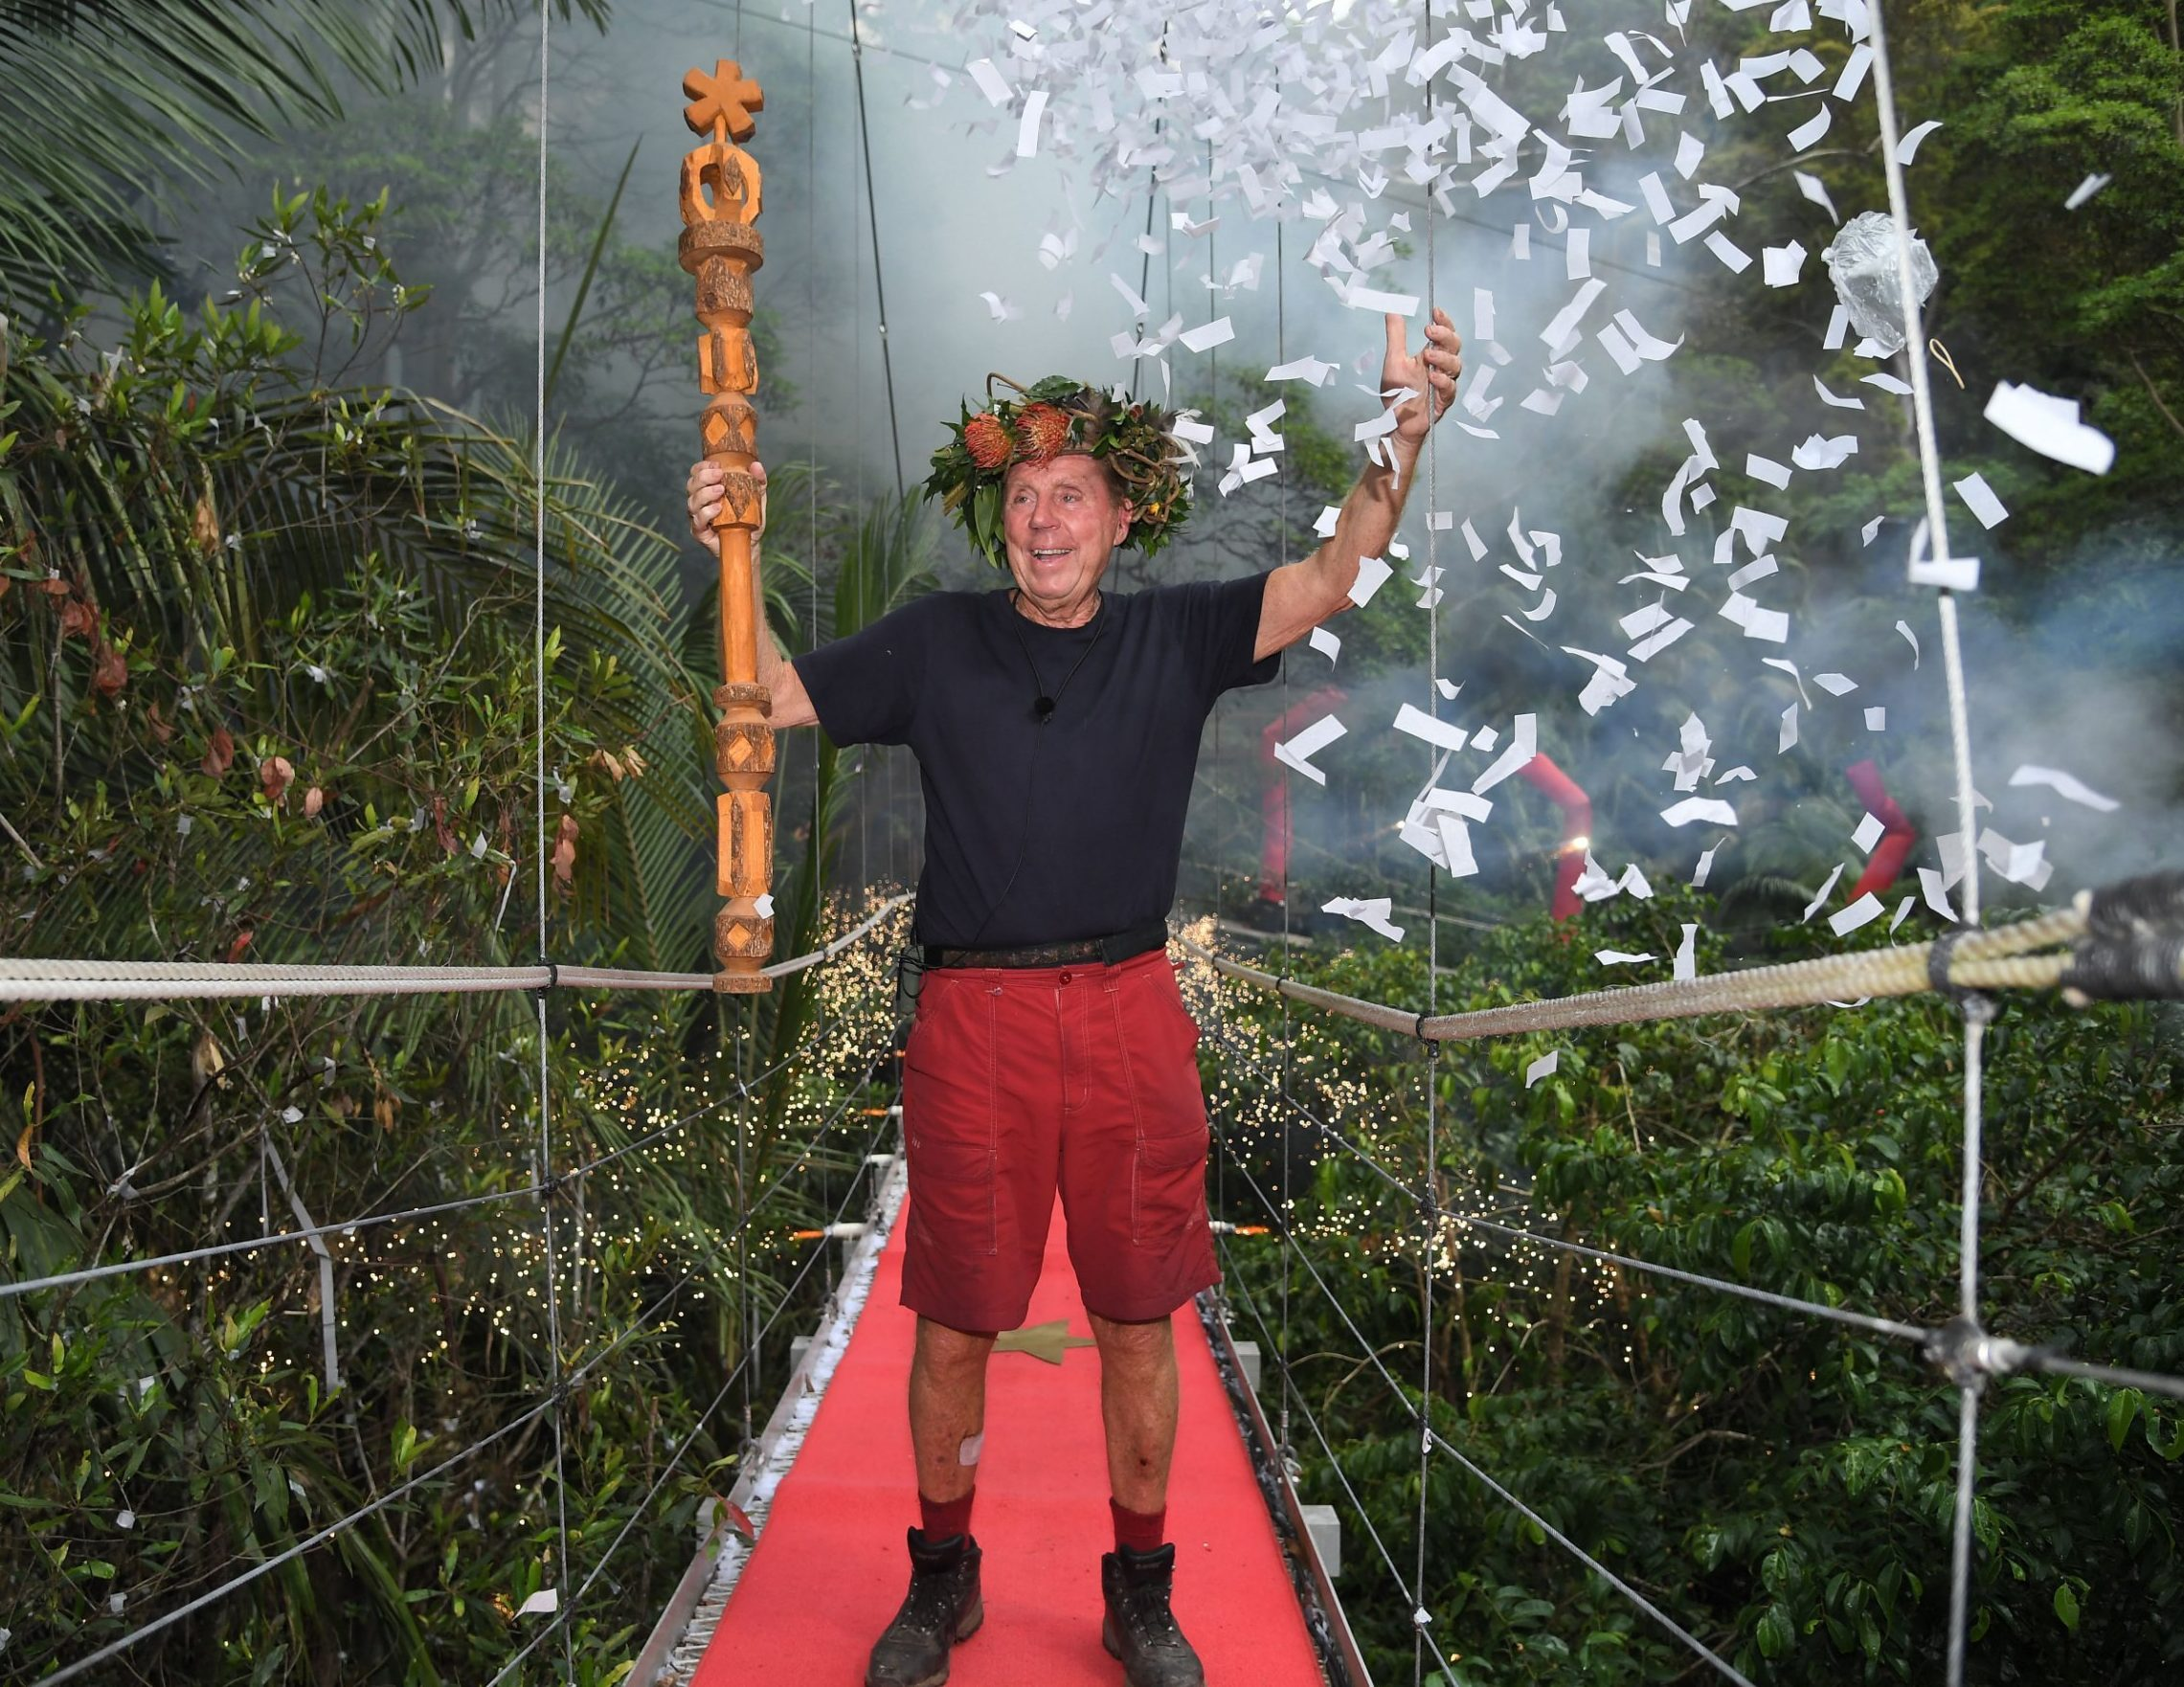 Editorial use only Mandatory Credit: Photo by James Gourley/ITV/REX (10019593ad) Harry Redknapp is crowned King of the Jungle 'I'm a Celebrity... Get Me Out of Here!' TV Show, Series 18, Australia - 09 Dec 2018